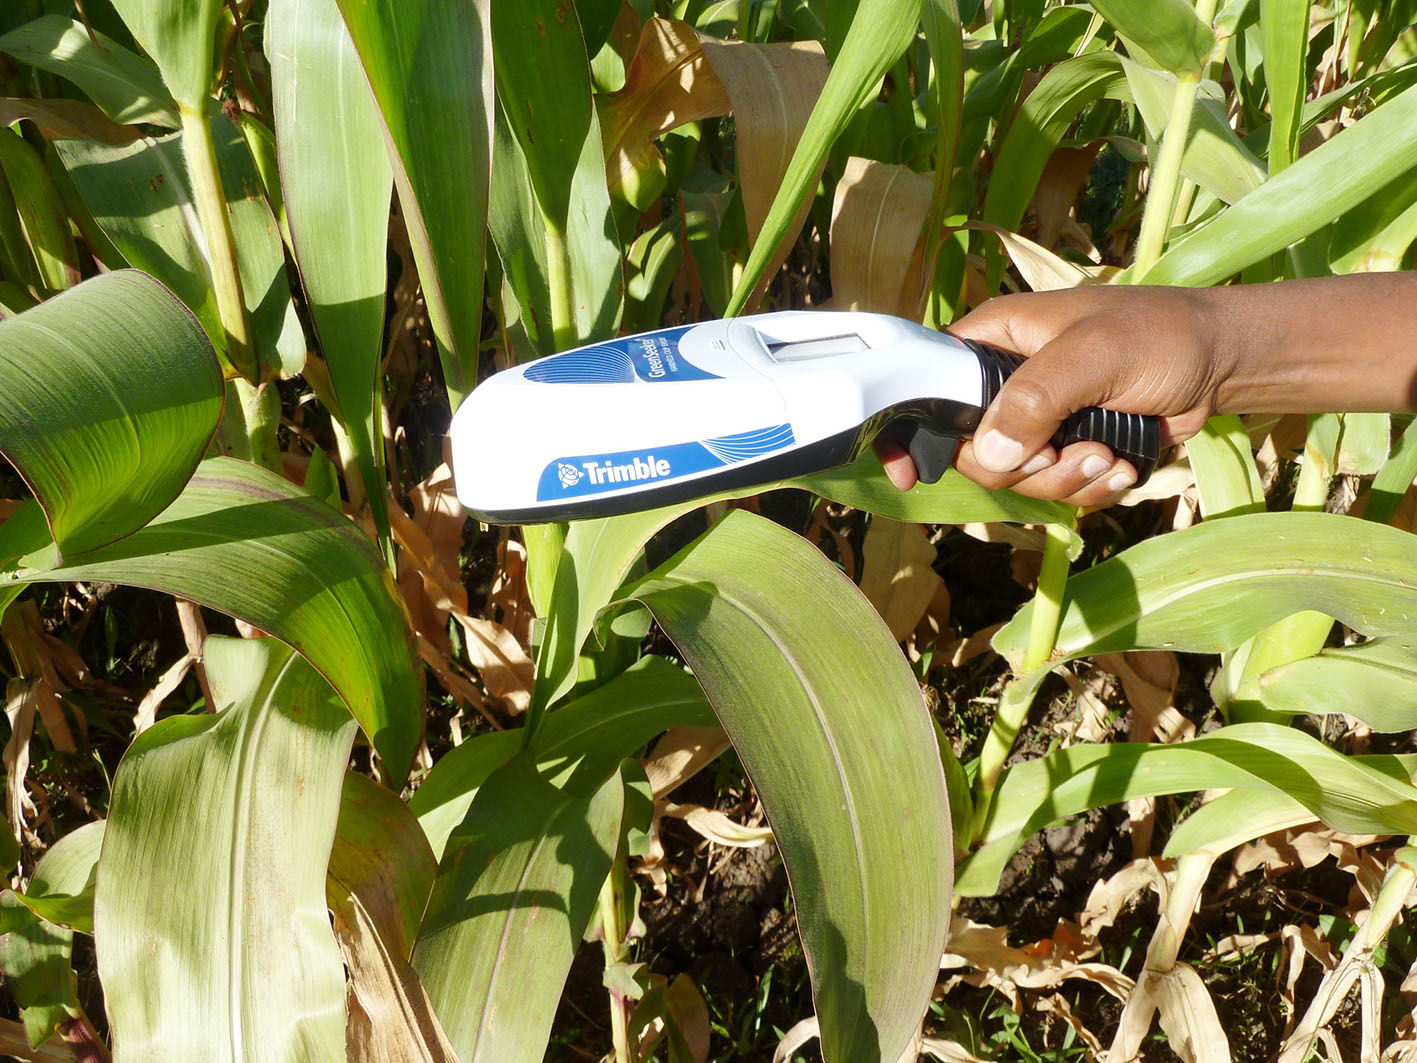 Pocket sensors for precision agriculture to reach Ethiopian farmers